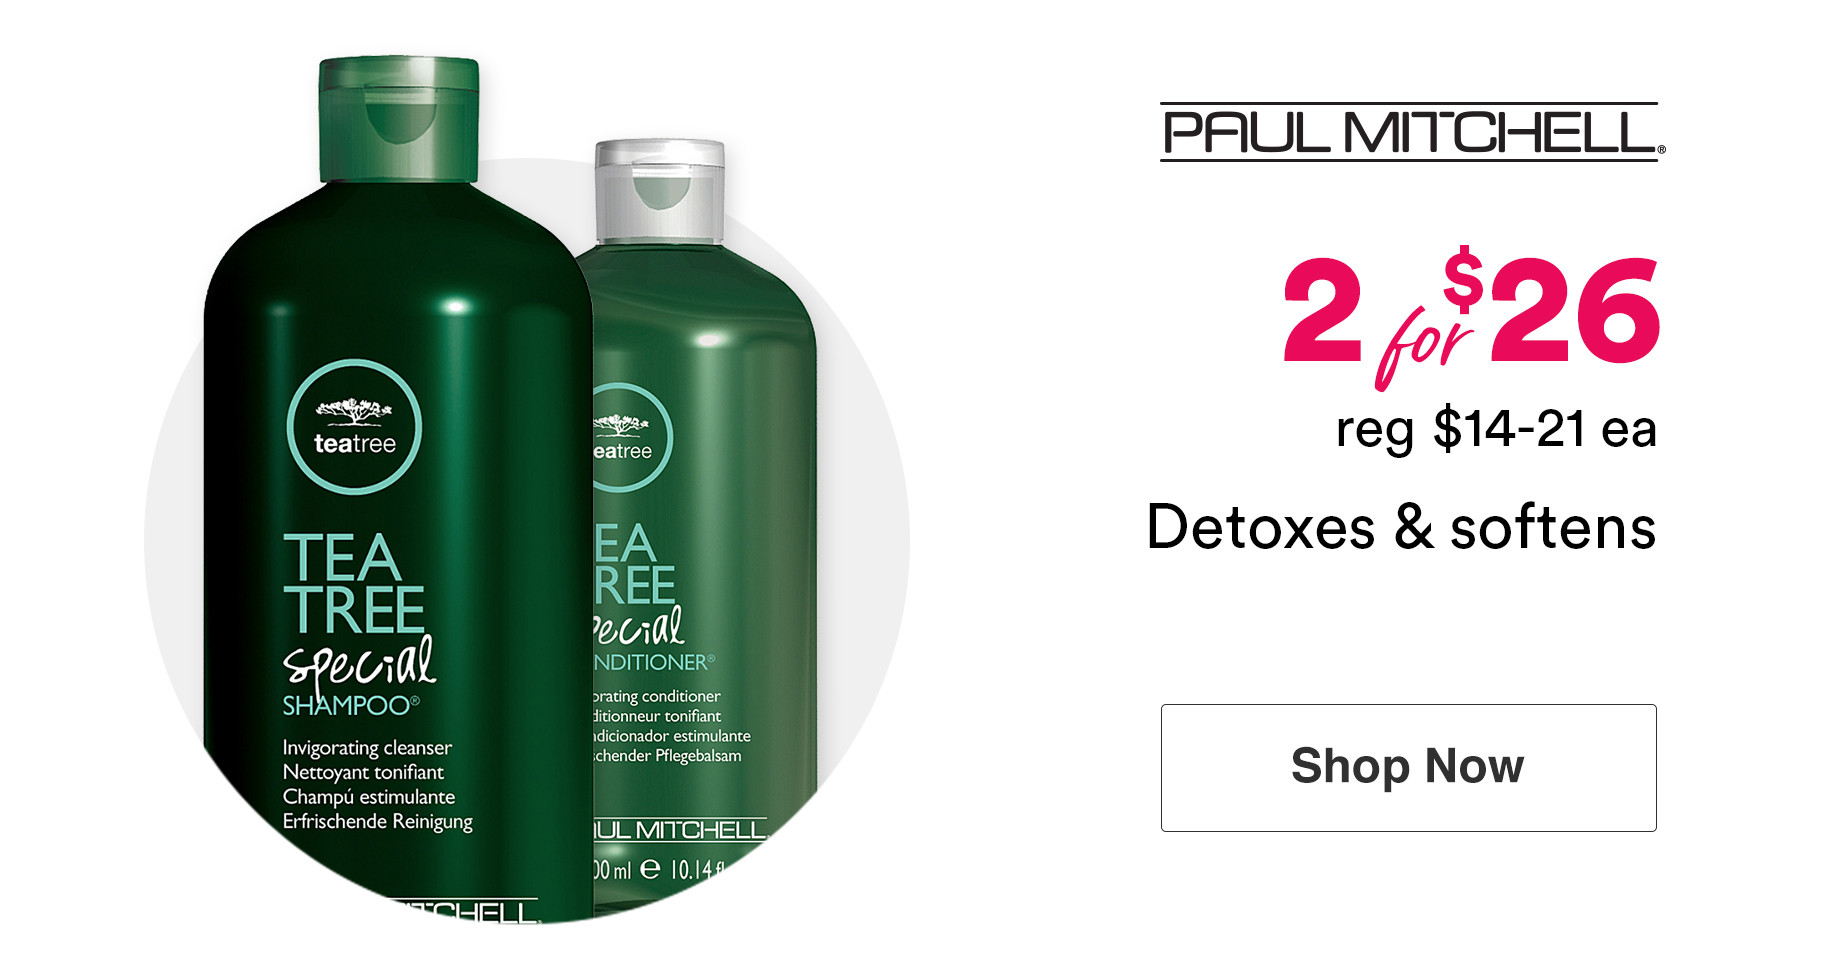 Paul Mitchell Tea Tree Special Shampoos and Conditioners are now 2 for $26